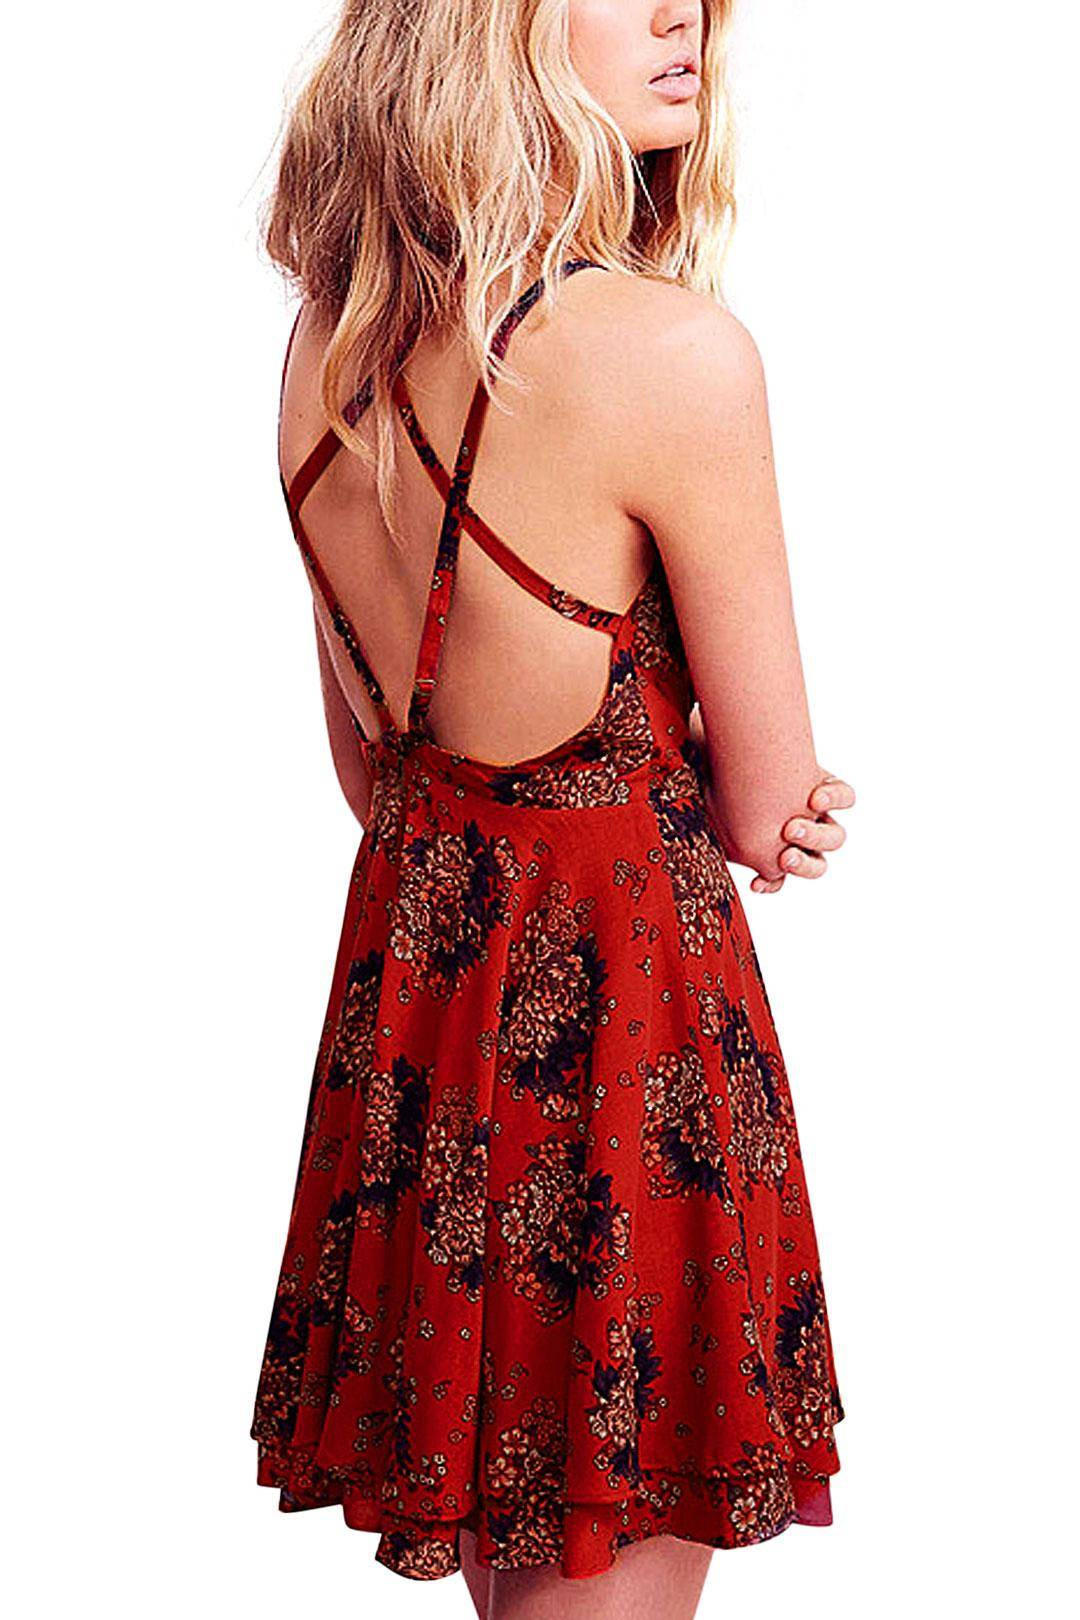 d3f7280ee86 Red Floral Print Layer Strappy Back Cami from Young   Free